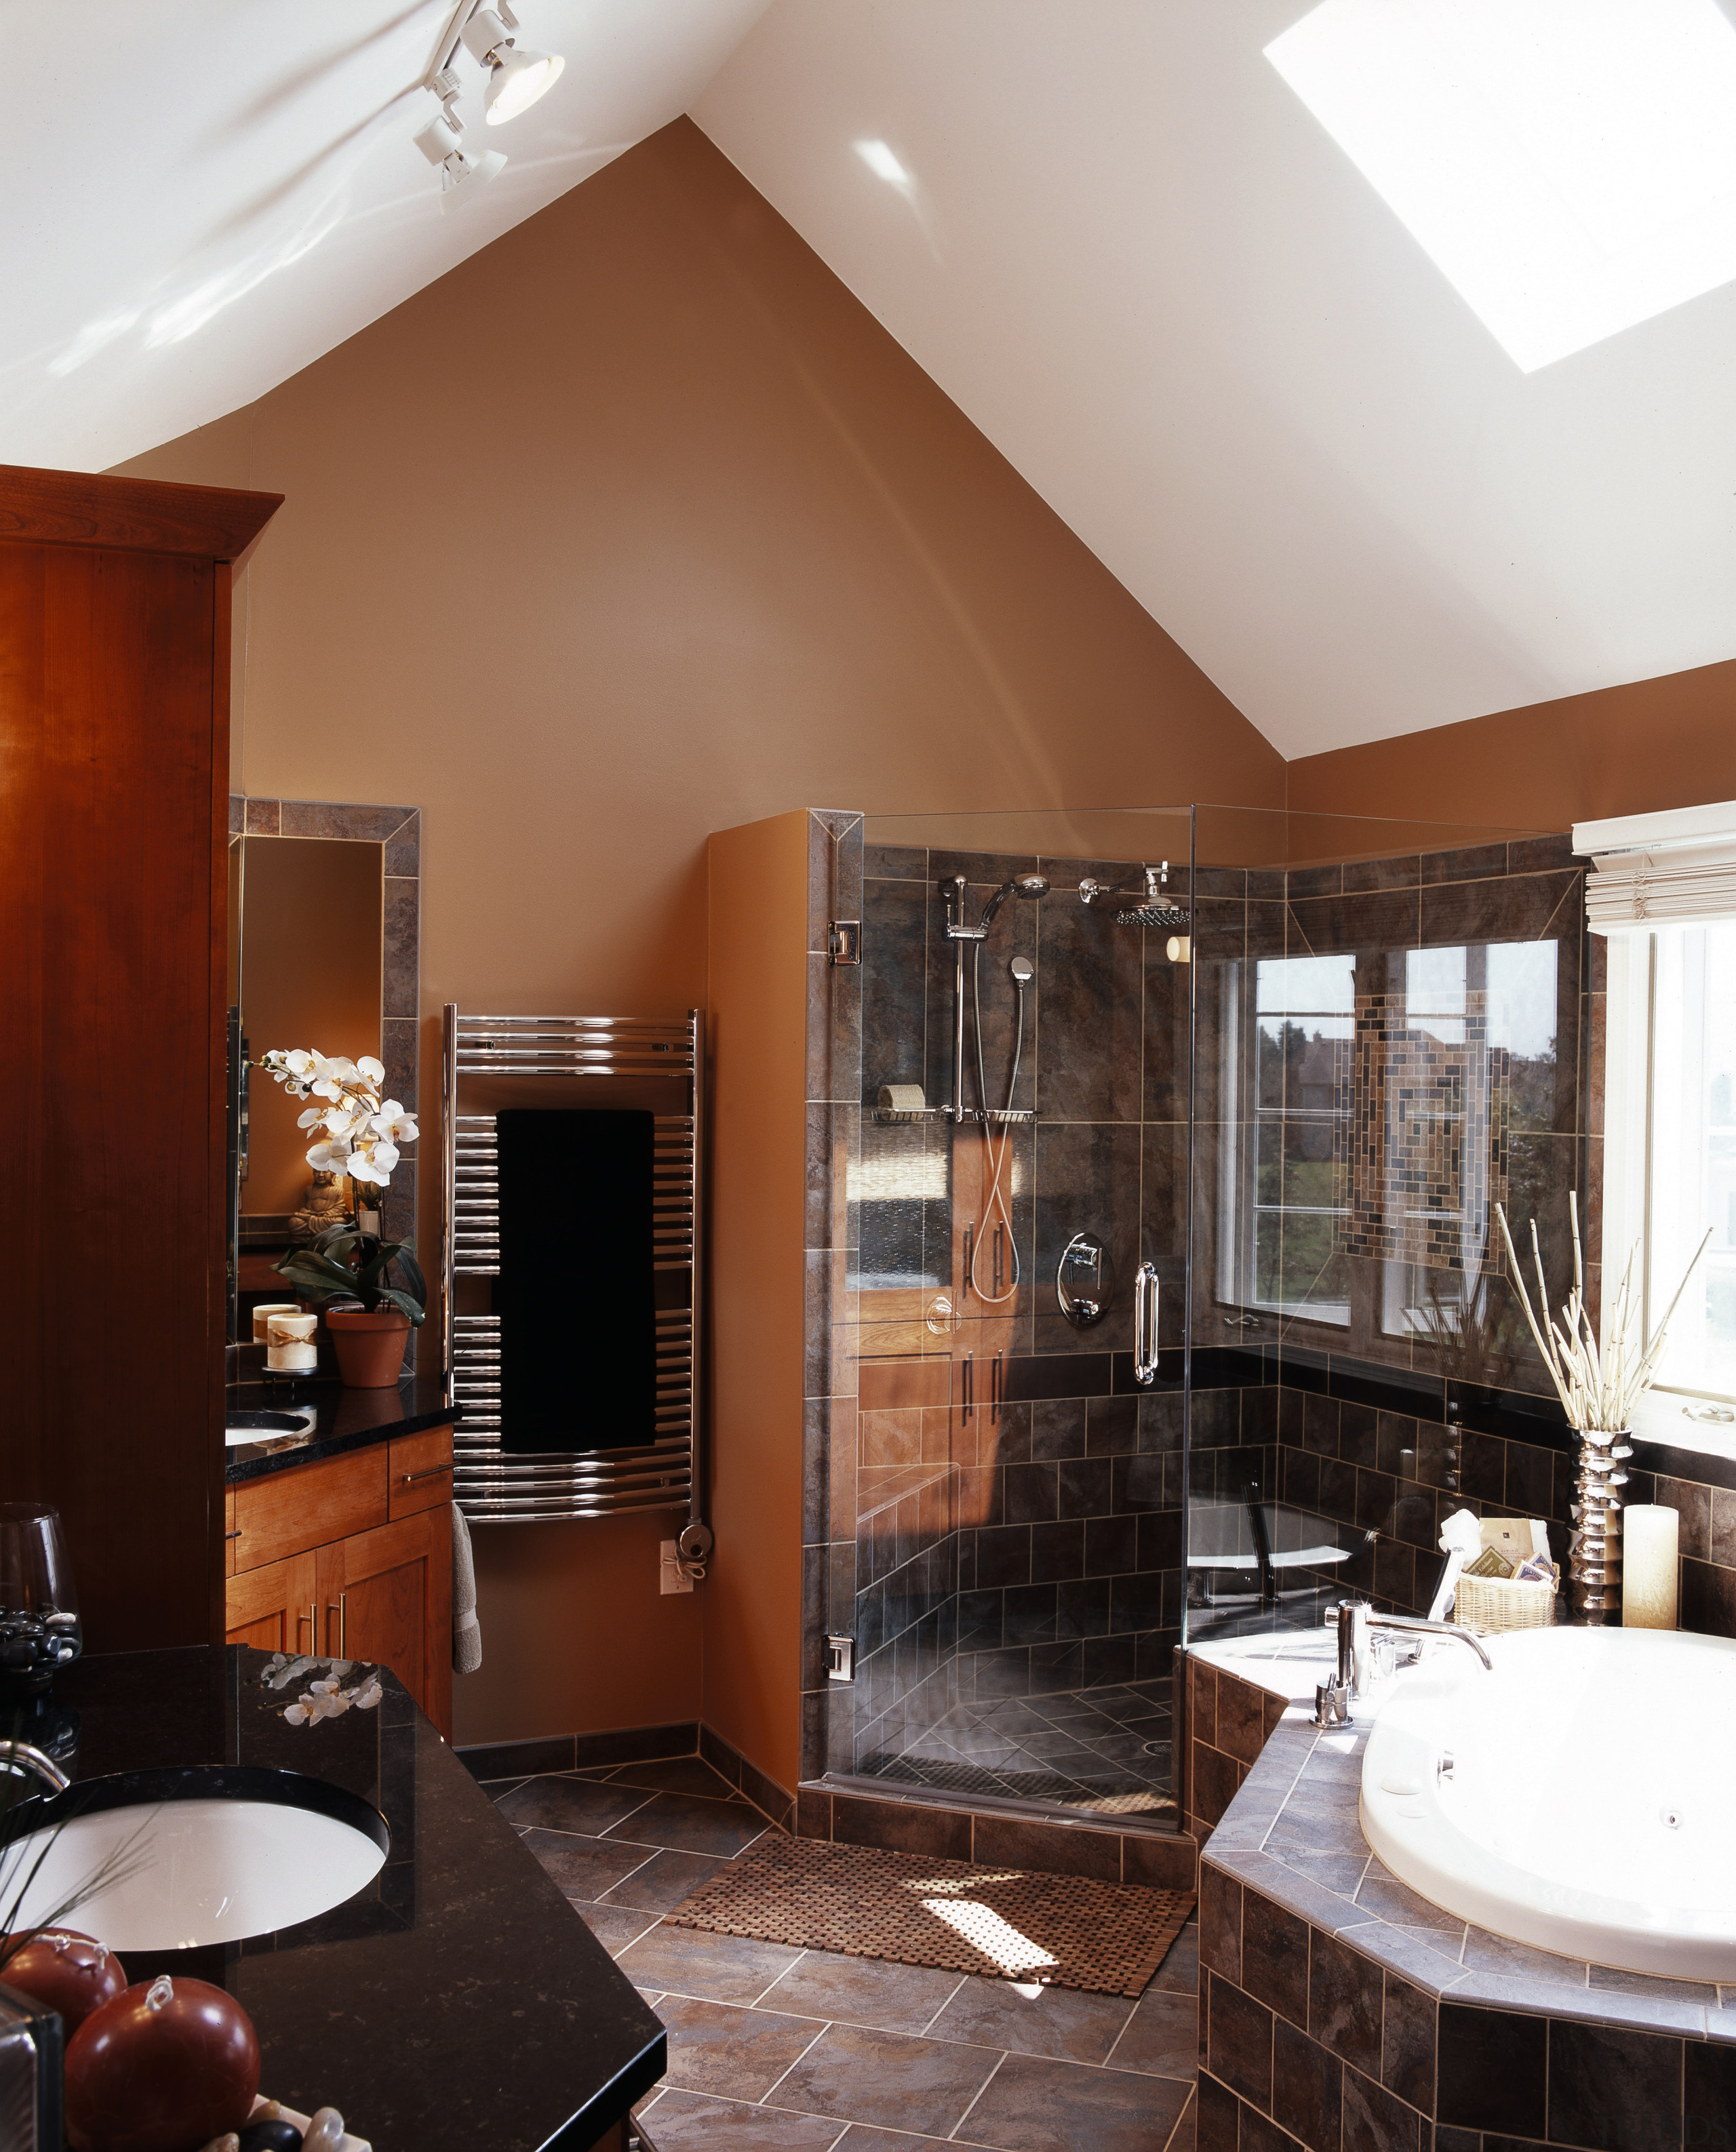 A view of Eighteenth Century Italian Architecture was bathroom, ceiling, countertop, home, interior design, real estate, room, window, white